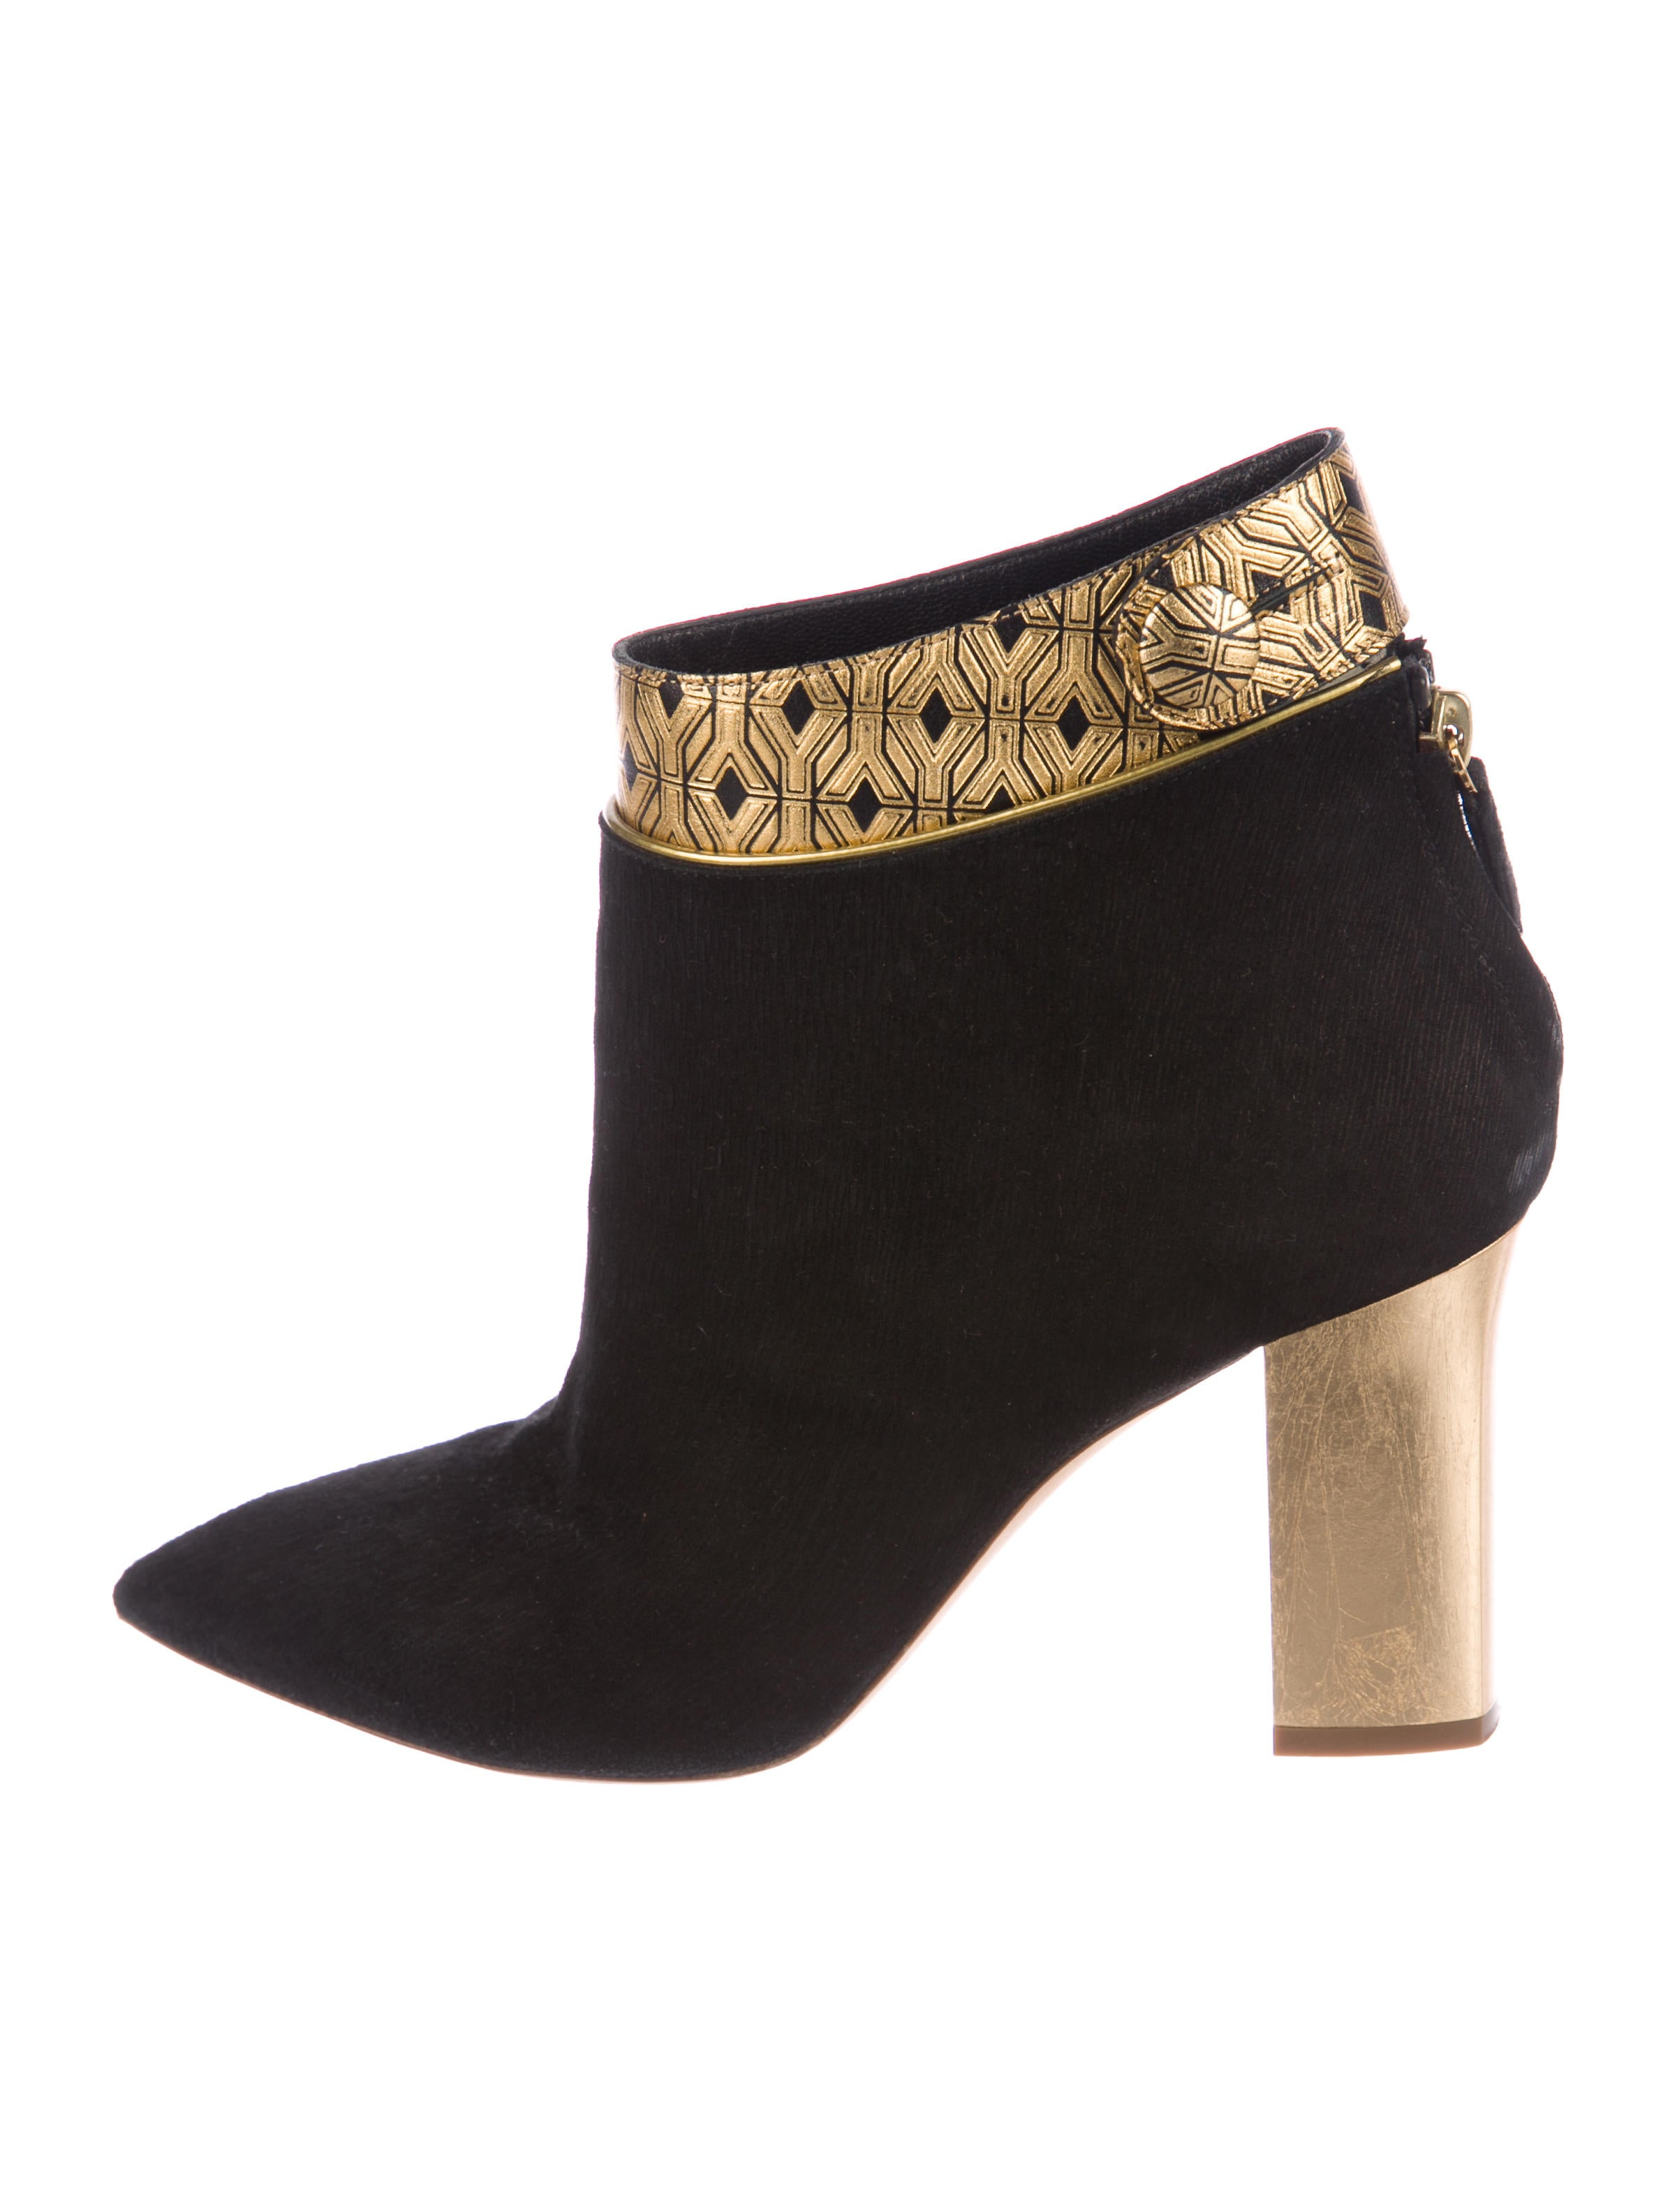 footlocker cheap price factory outlet cheap price Pollini Metallic Suede Ankle Booties sale new 7Bvhny31Yc